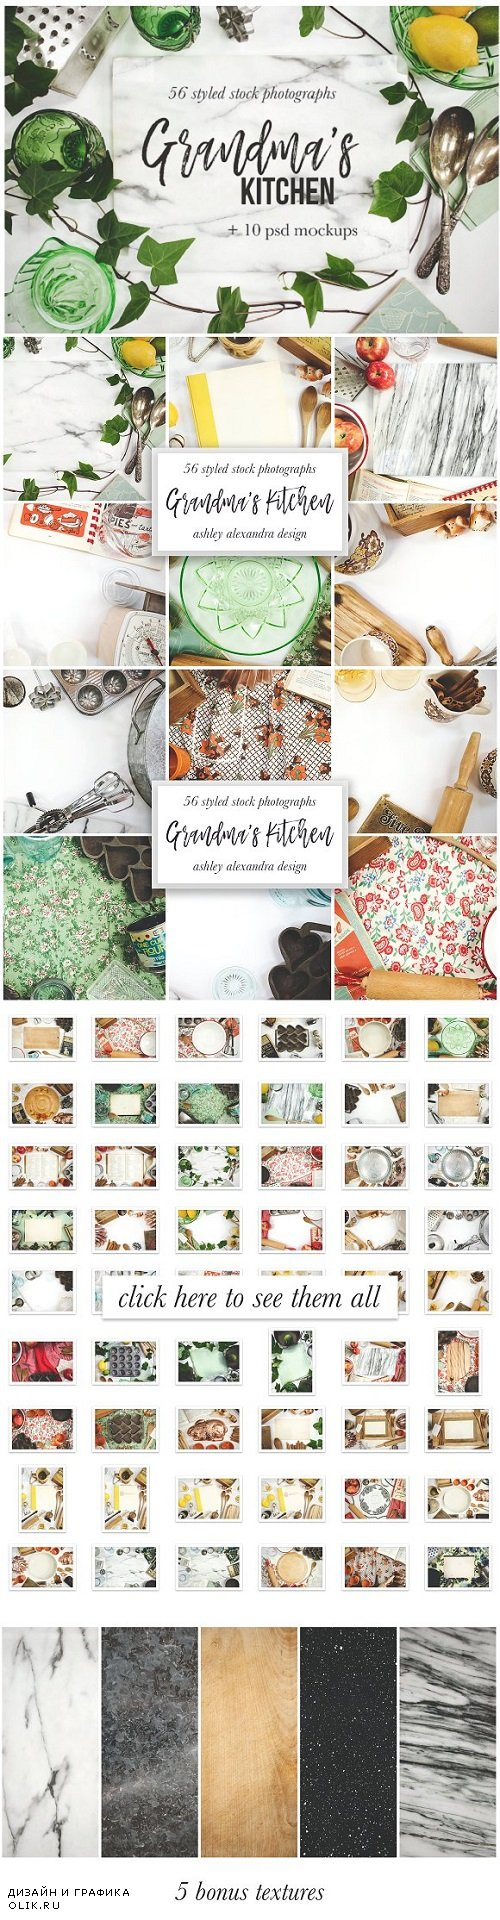 Grandma's Kitchen Photography Bundle 1420243